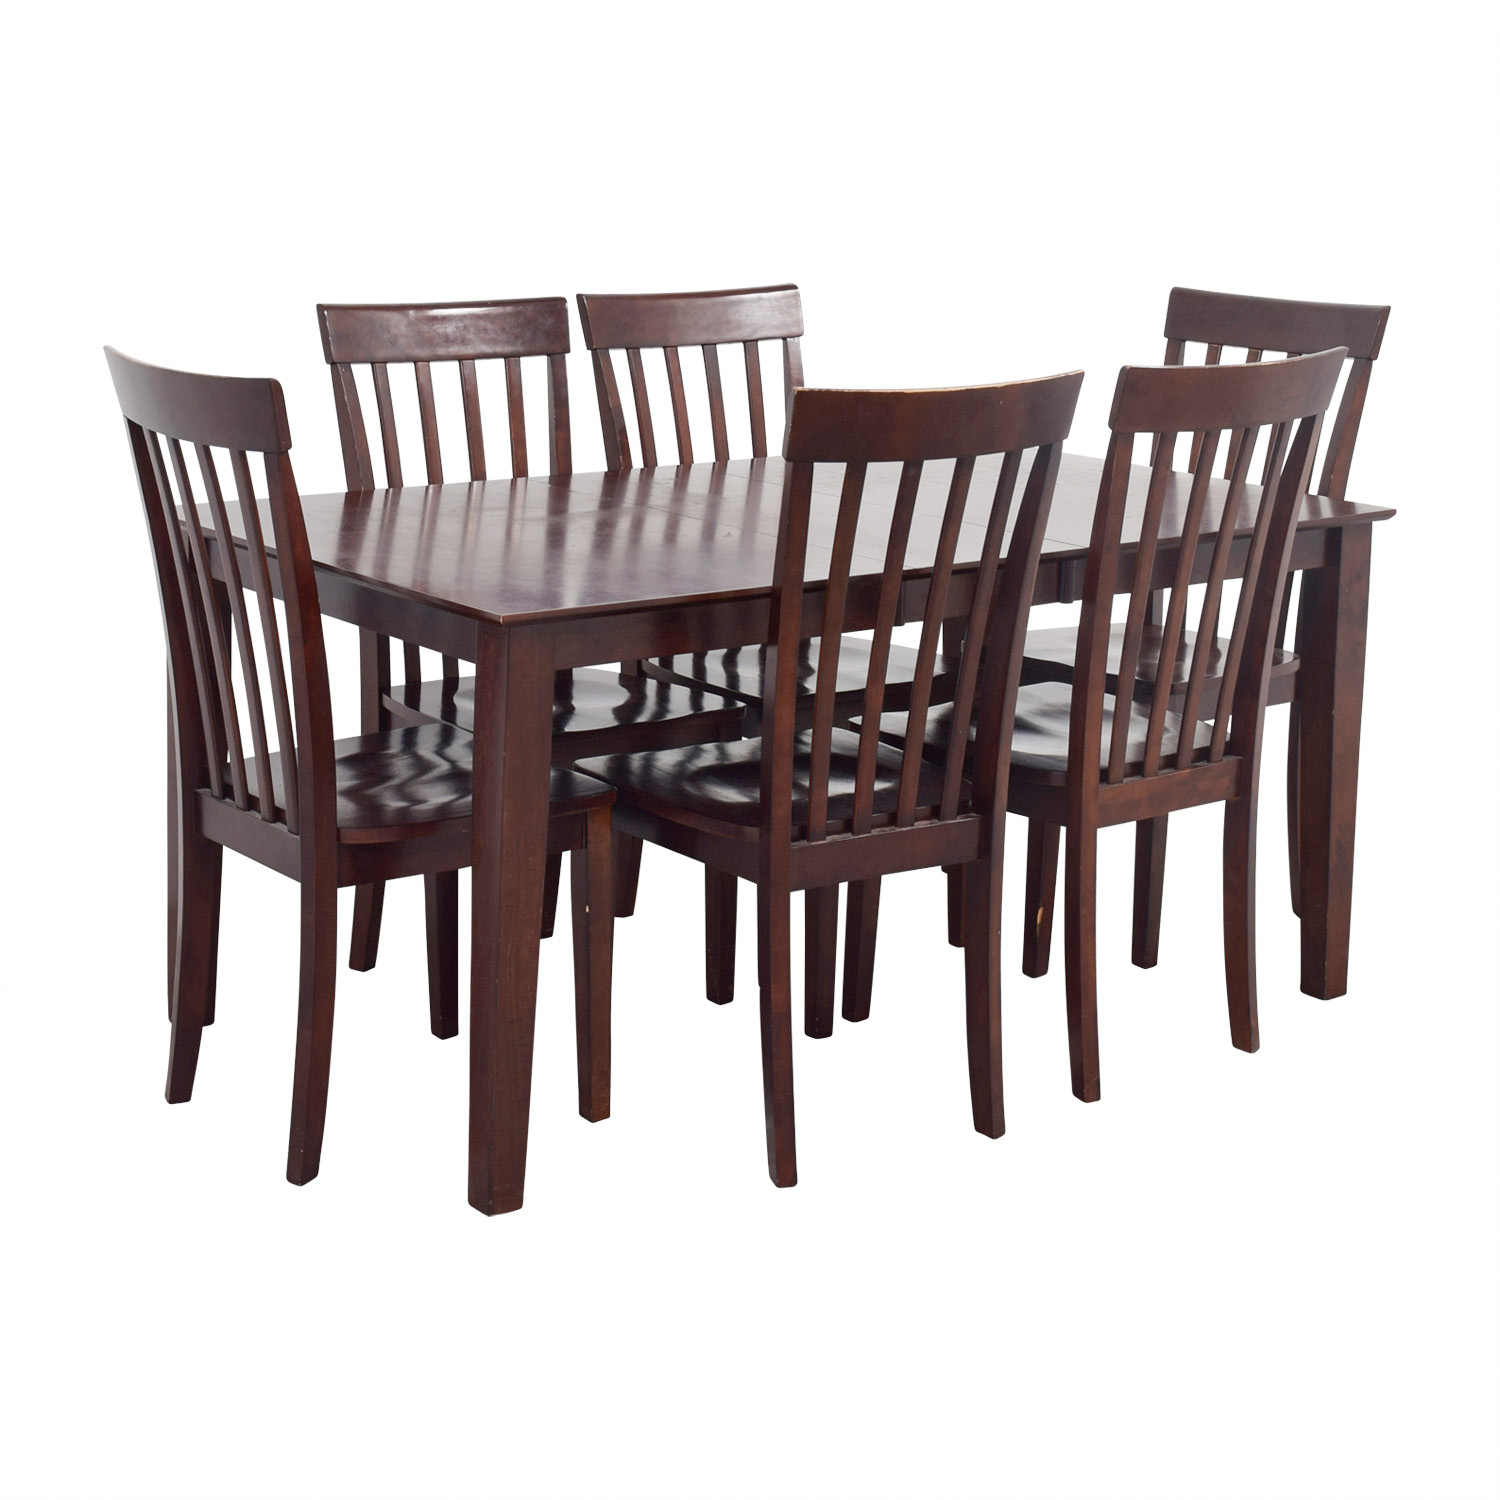 Used Table And Chairs 89 Off Bob 39s Furniture Bob 39s Furniture Dining Room